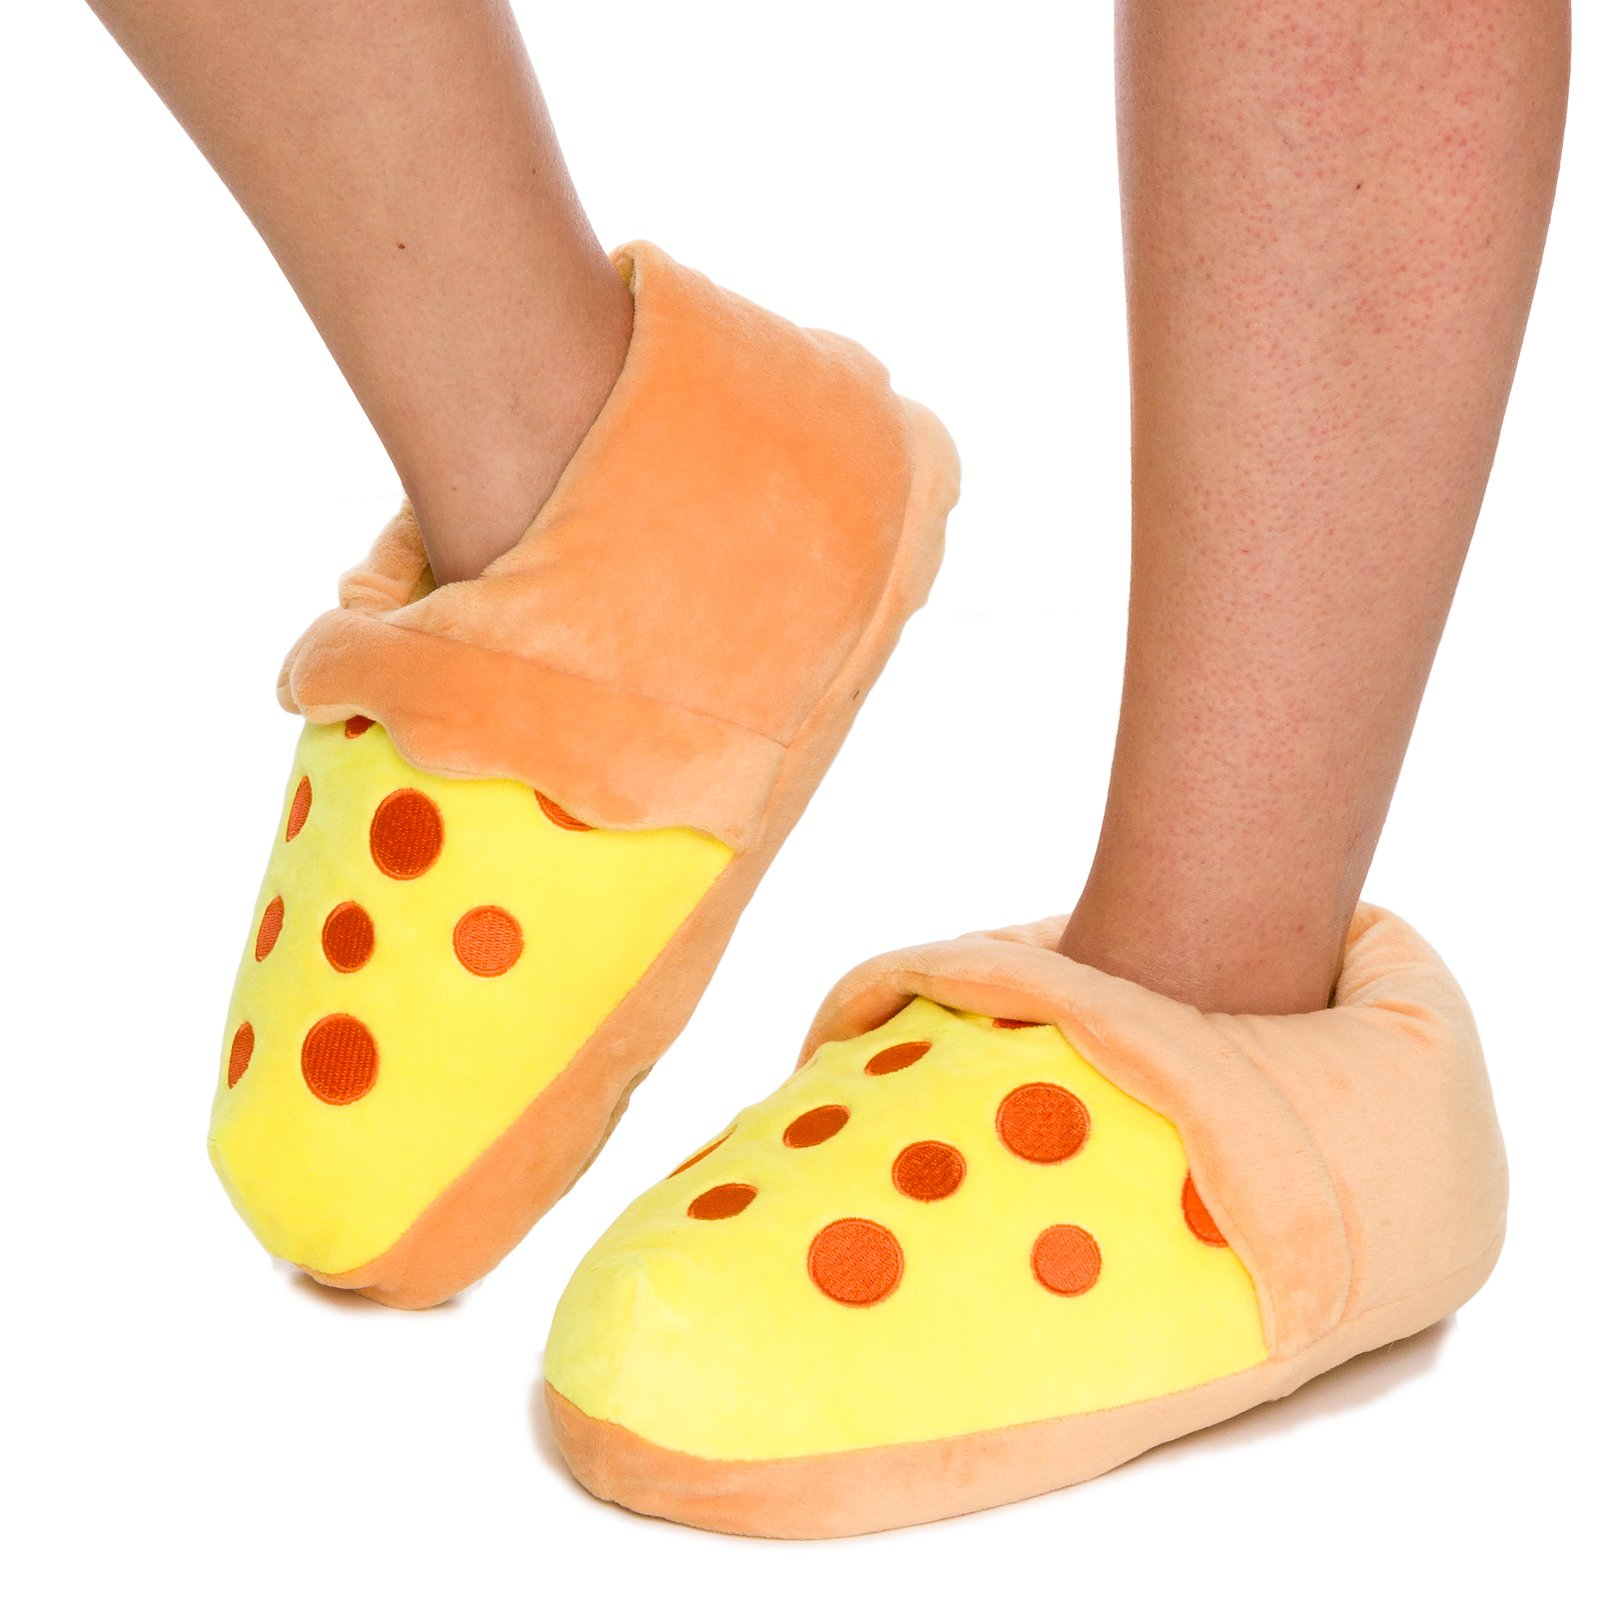 Buy Pizza Slice Plush Now!